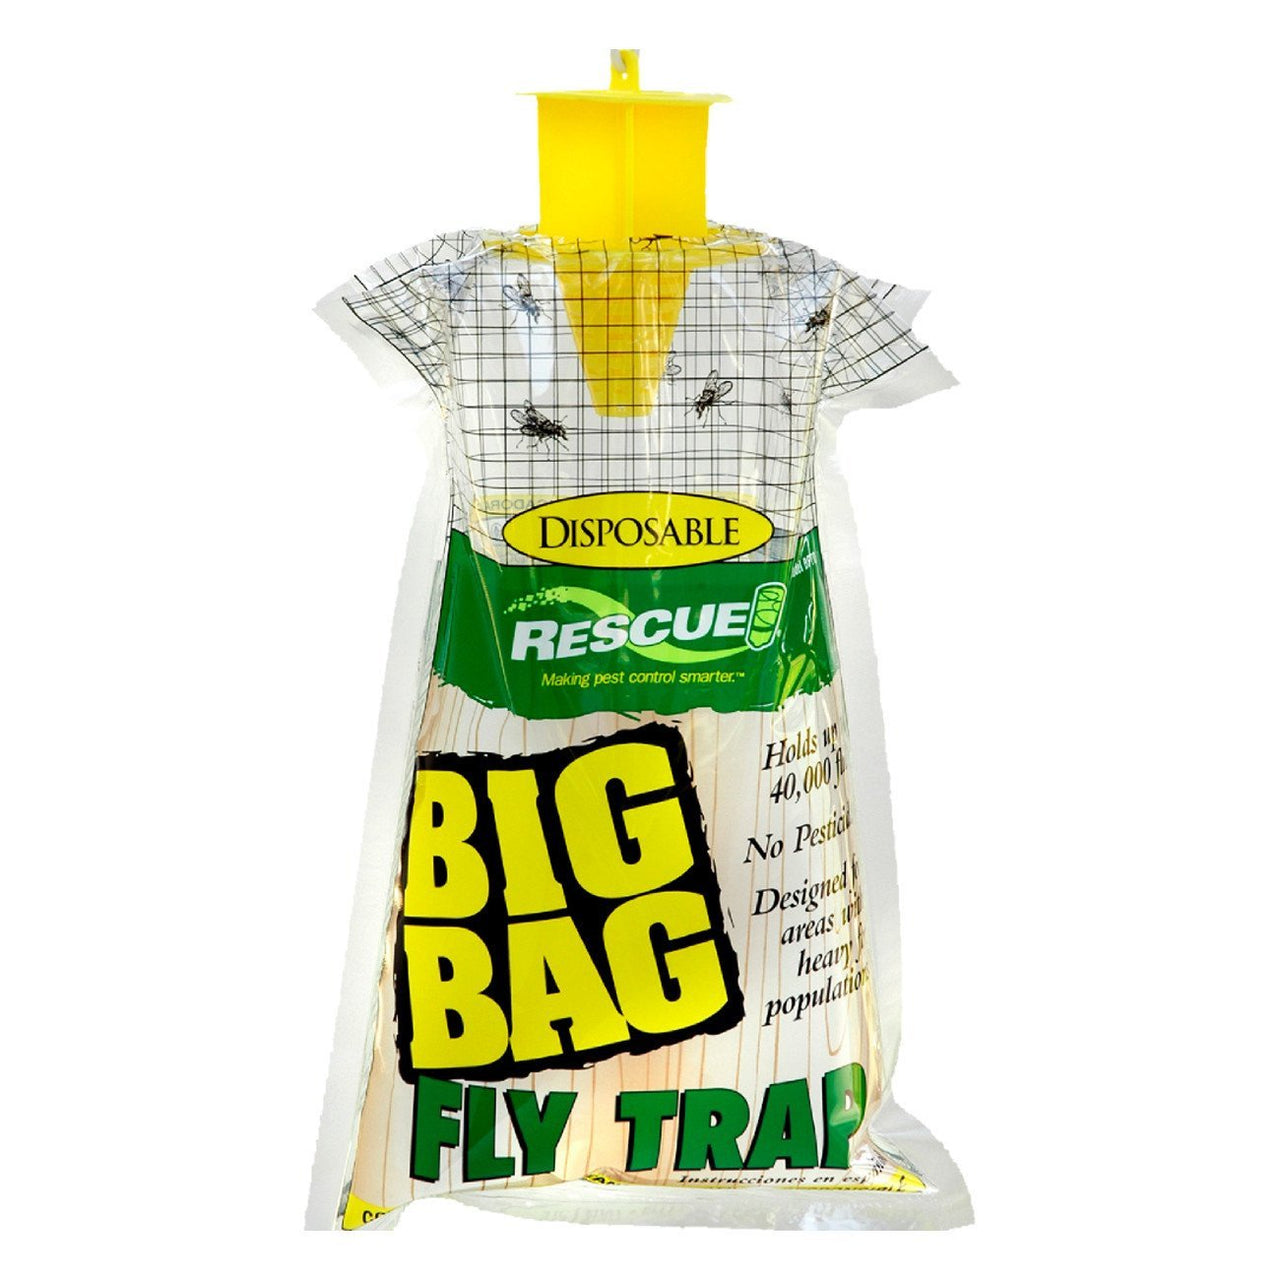 Rescue! Fly Big Bag Traps Disposable (12 Traps) - Pest Control Rescue! - Canada